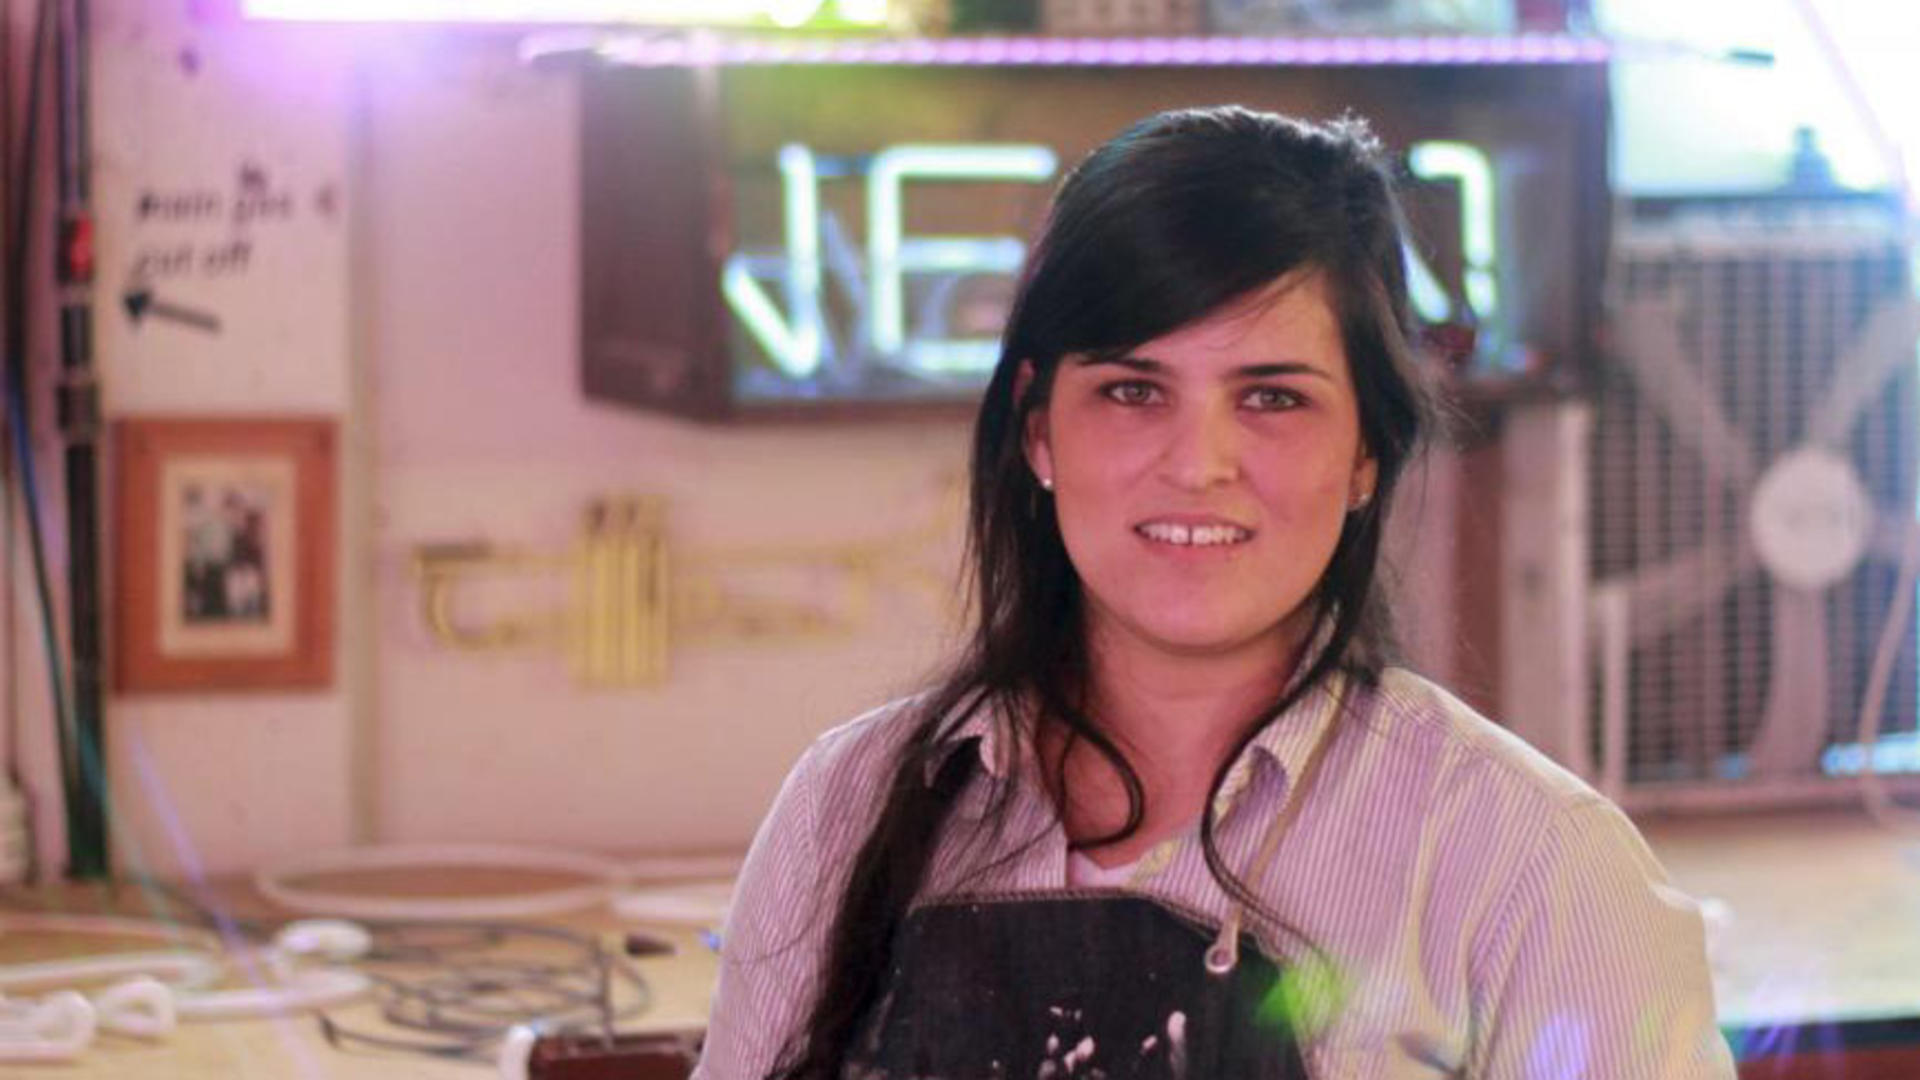 a young woman with dark hair stands in a studio in front of a neon sign